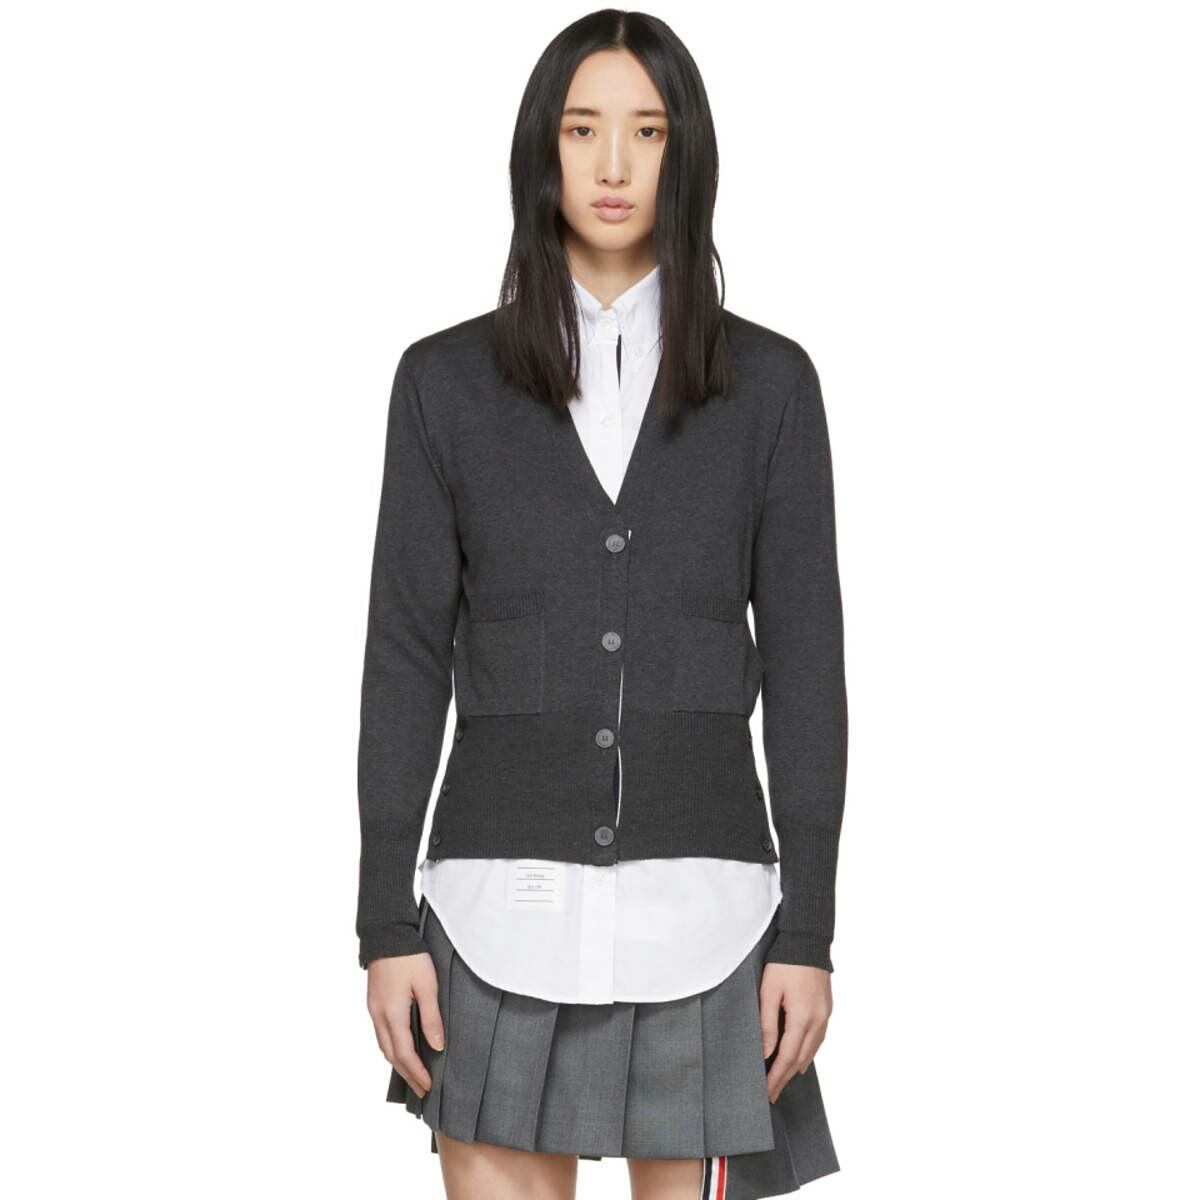 Thom Browne Grey Silk V-Neck Cardigan Ssense USA WOMEN Women FASHION Womens KNITWEAR